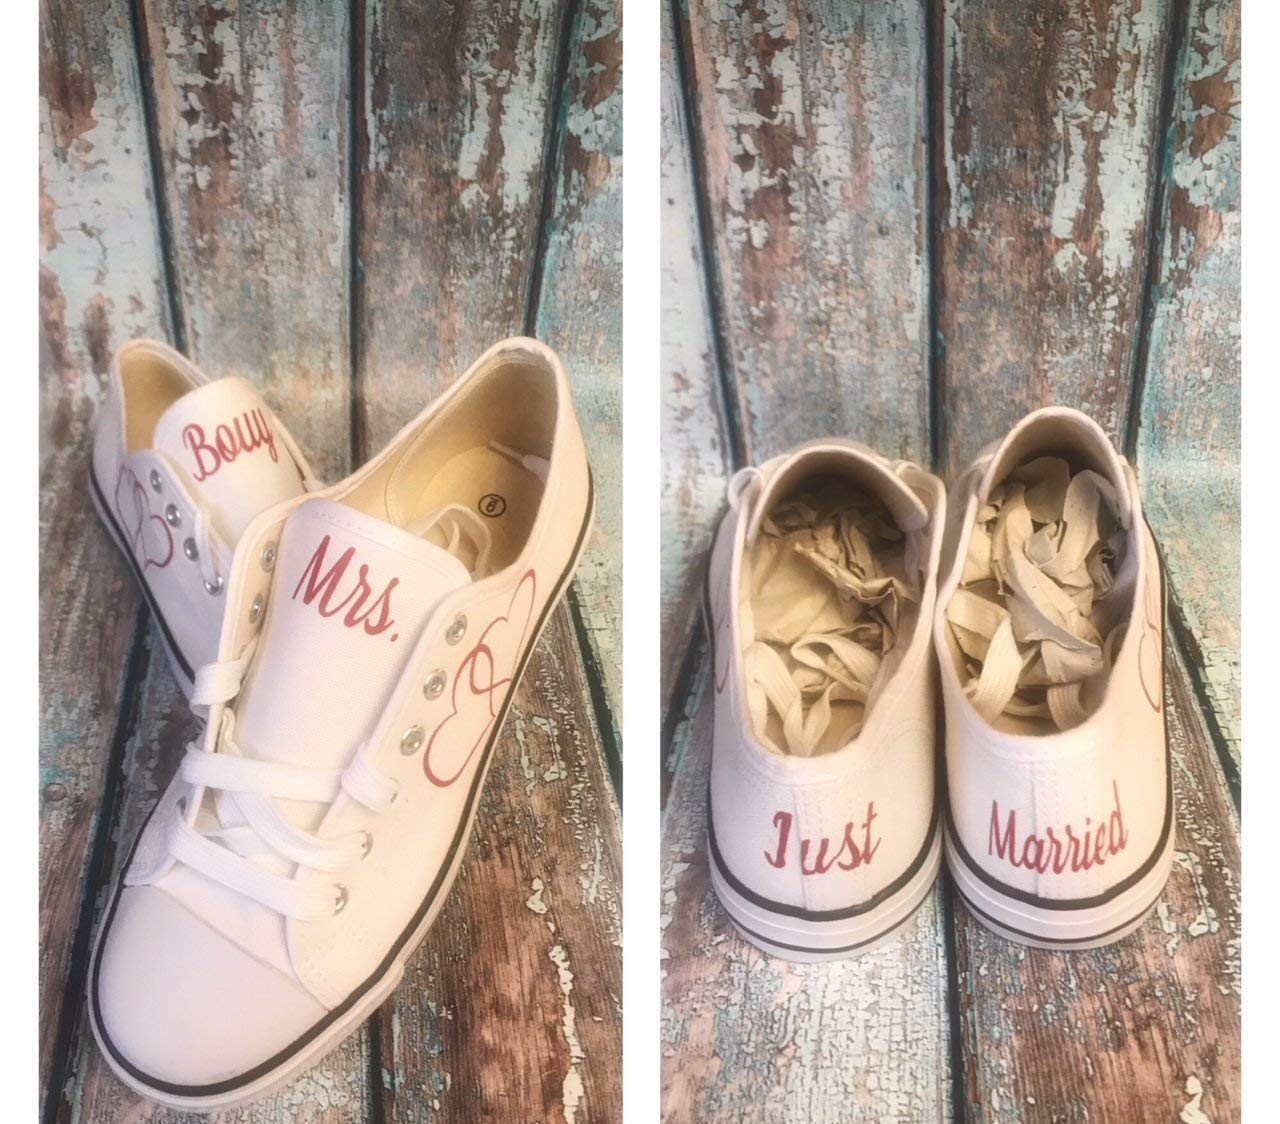 693d7996a2cb4b wedding reception shoes - wedding reception sneakers - white canvas wedding  shoes - custom wedding shoes - bride shoes - wedding photography props -  bridal ...